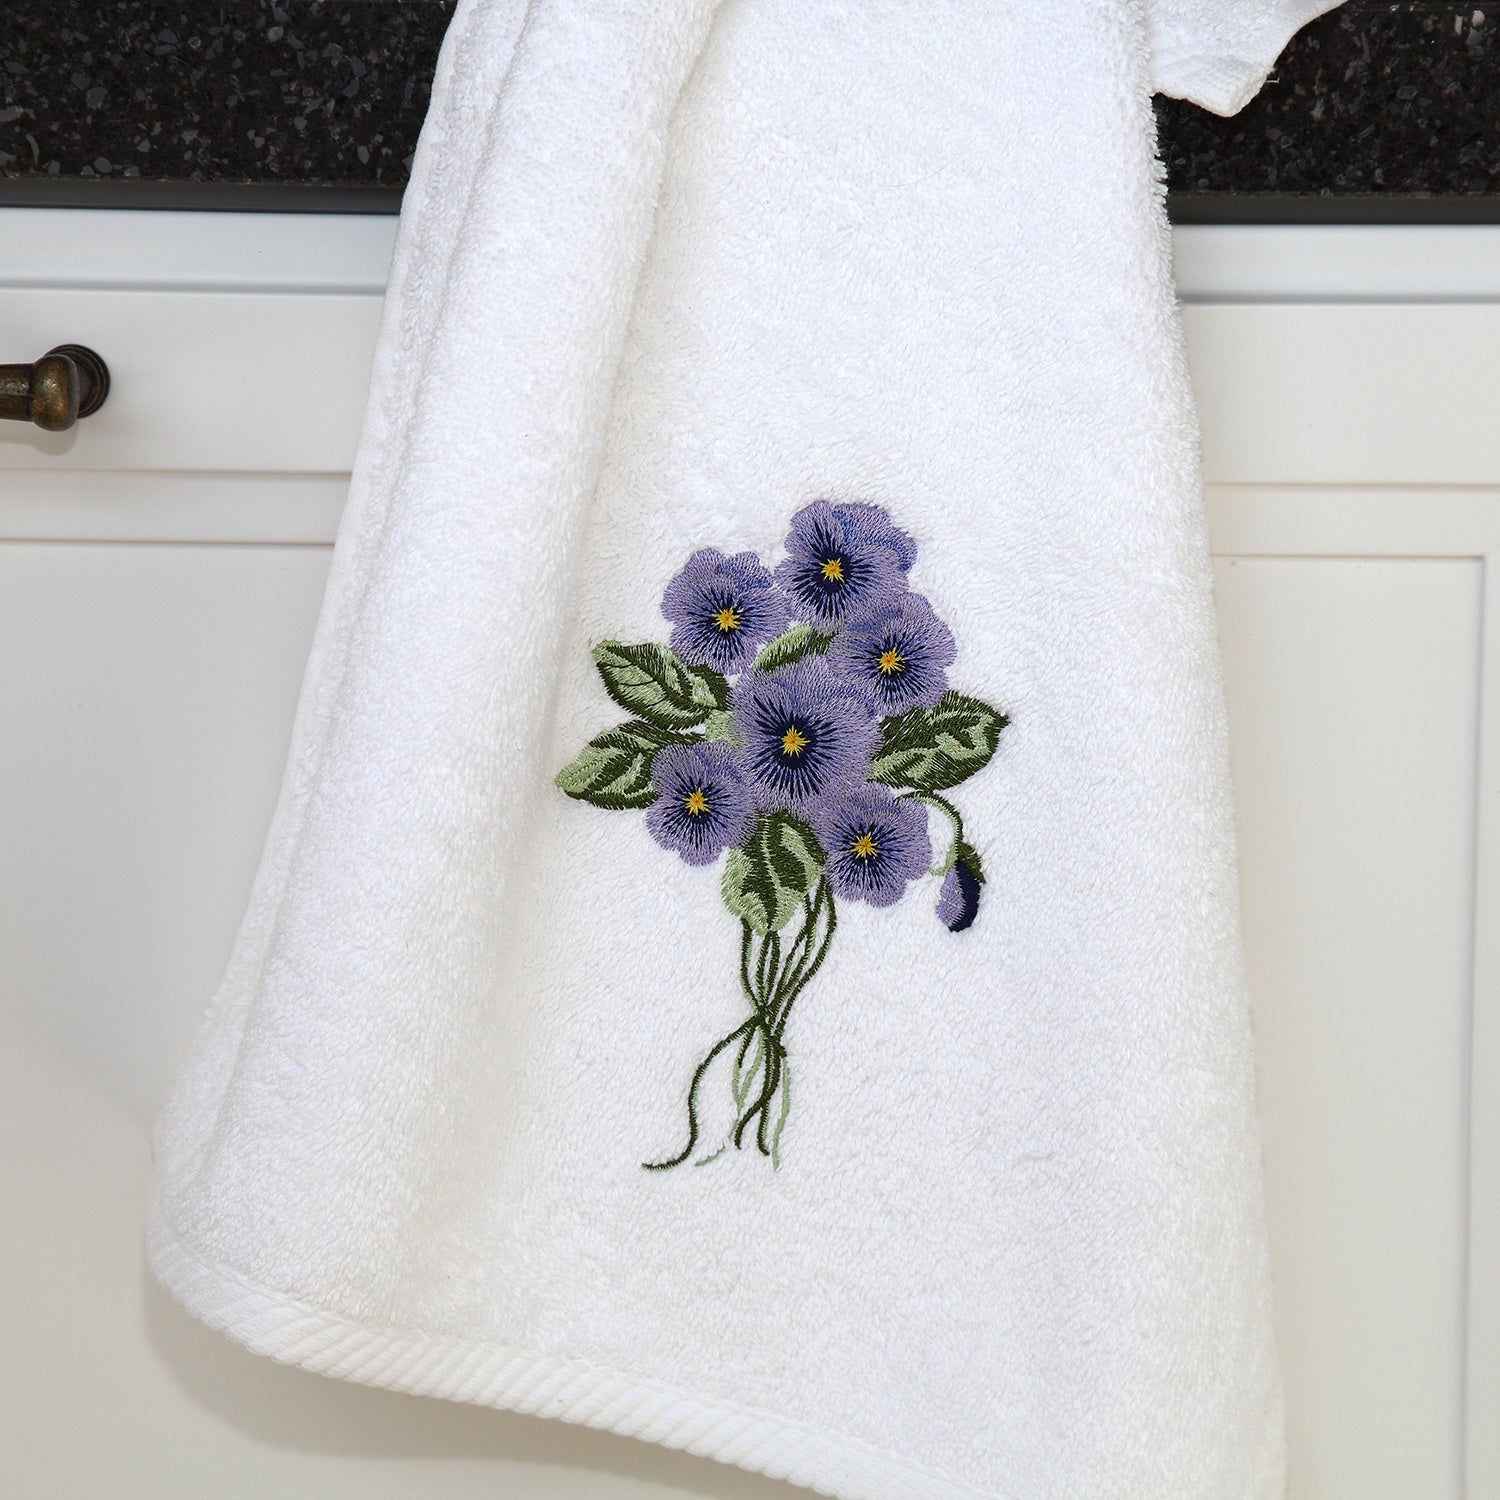 Authentic hotel spa soft twist turkish cotton hand towel with embroidered bouquet of violet flowers shop authentic hotel spa soft twist turkish cotton hand towel with embroidered bouquet of violet flowers free shipping on orders over 45 izmirmasajfo